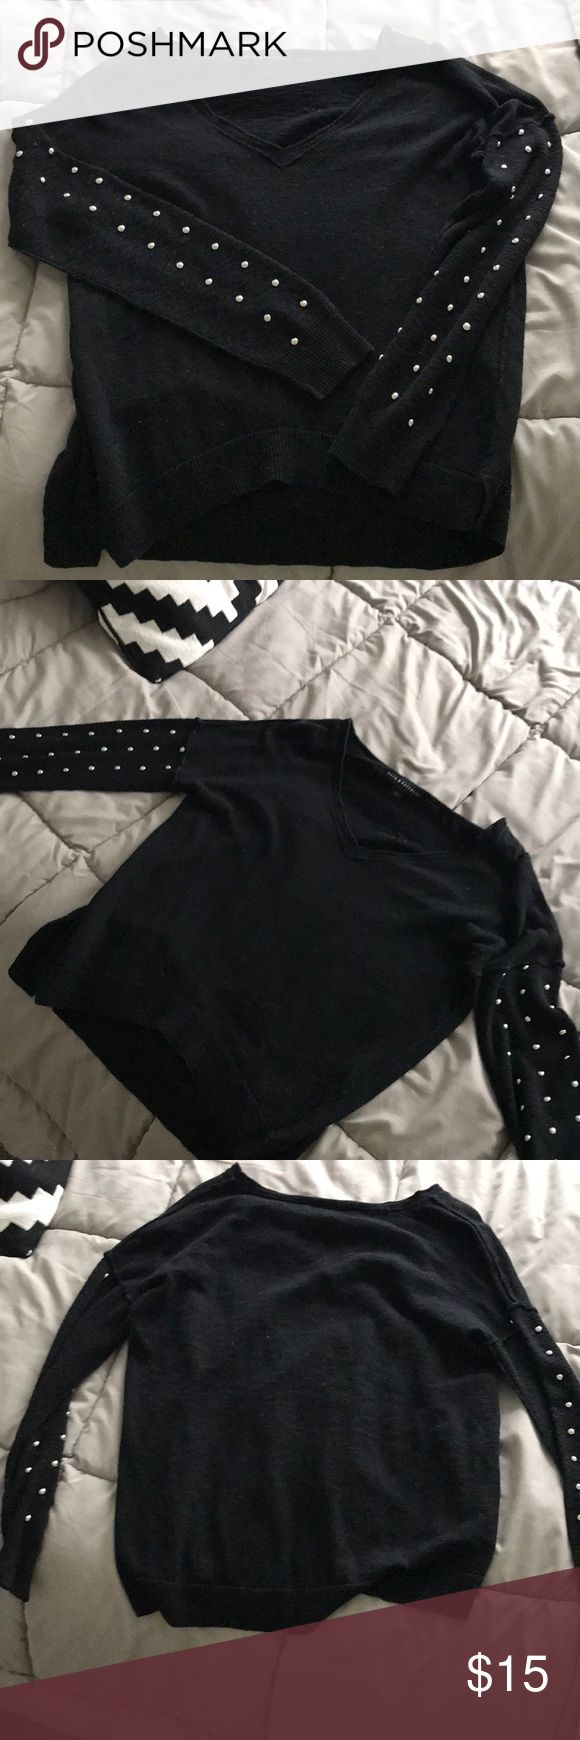 Studded sweater Rock & Republic black and silver studded sweater. Super edgy and cute for any occasion. Size small Rock & Republic Sweaters V-Necks